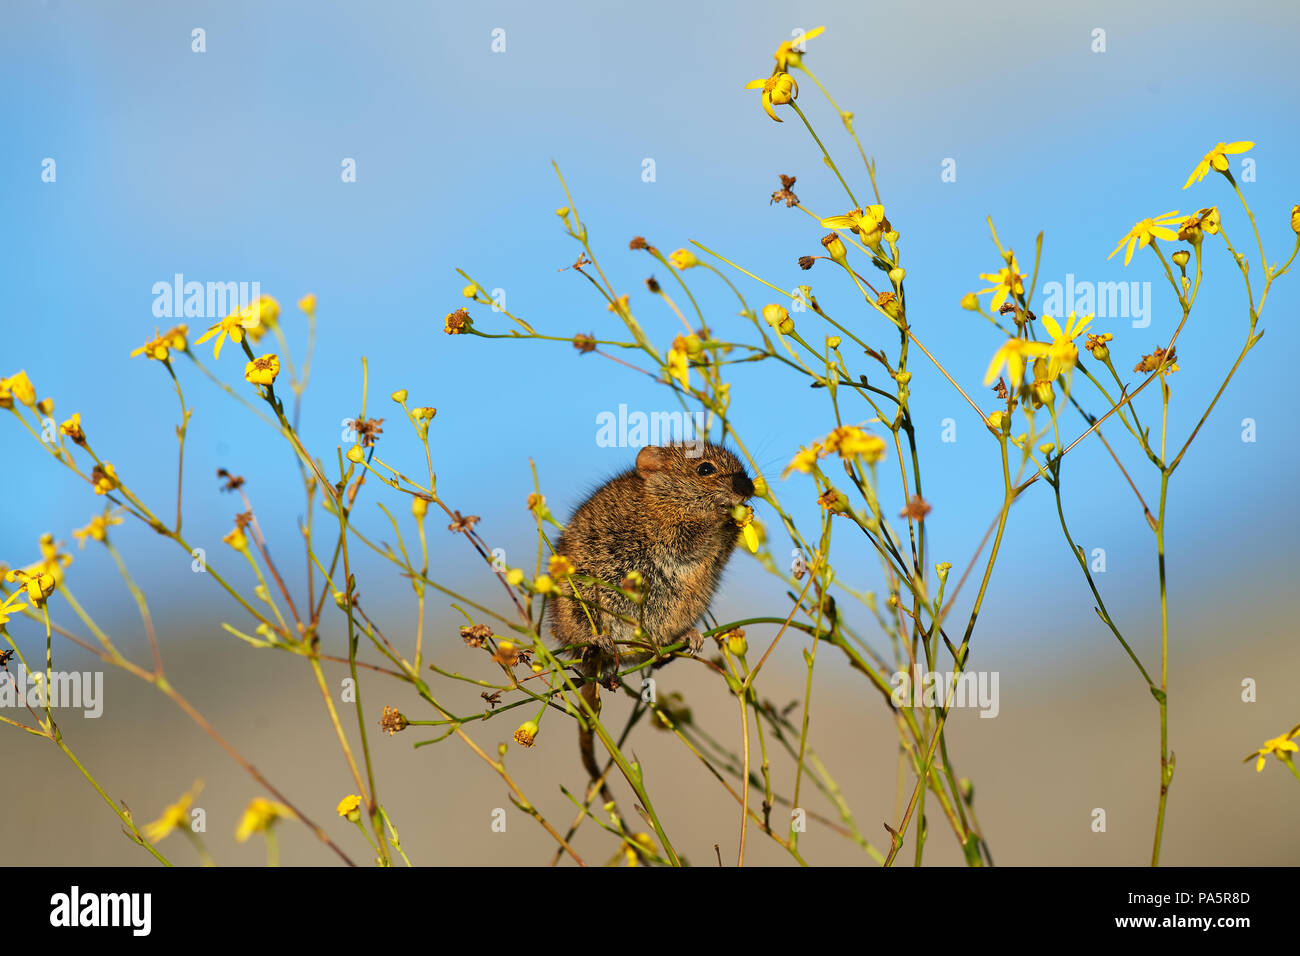 Striped mouse feeding on Yellow Daisy - Stock Image